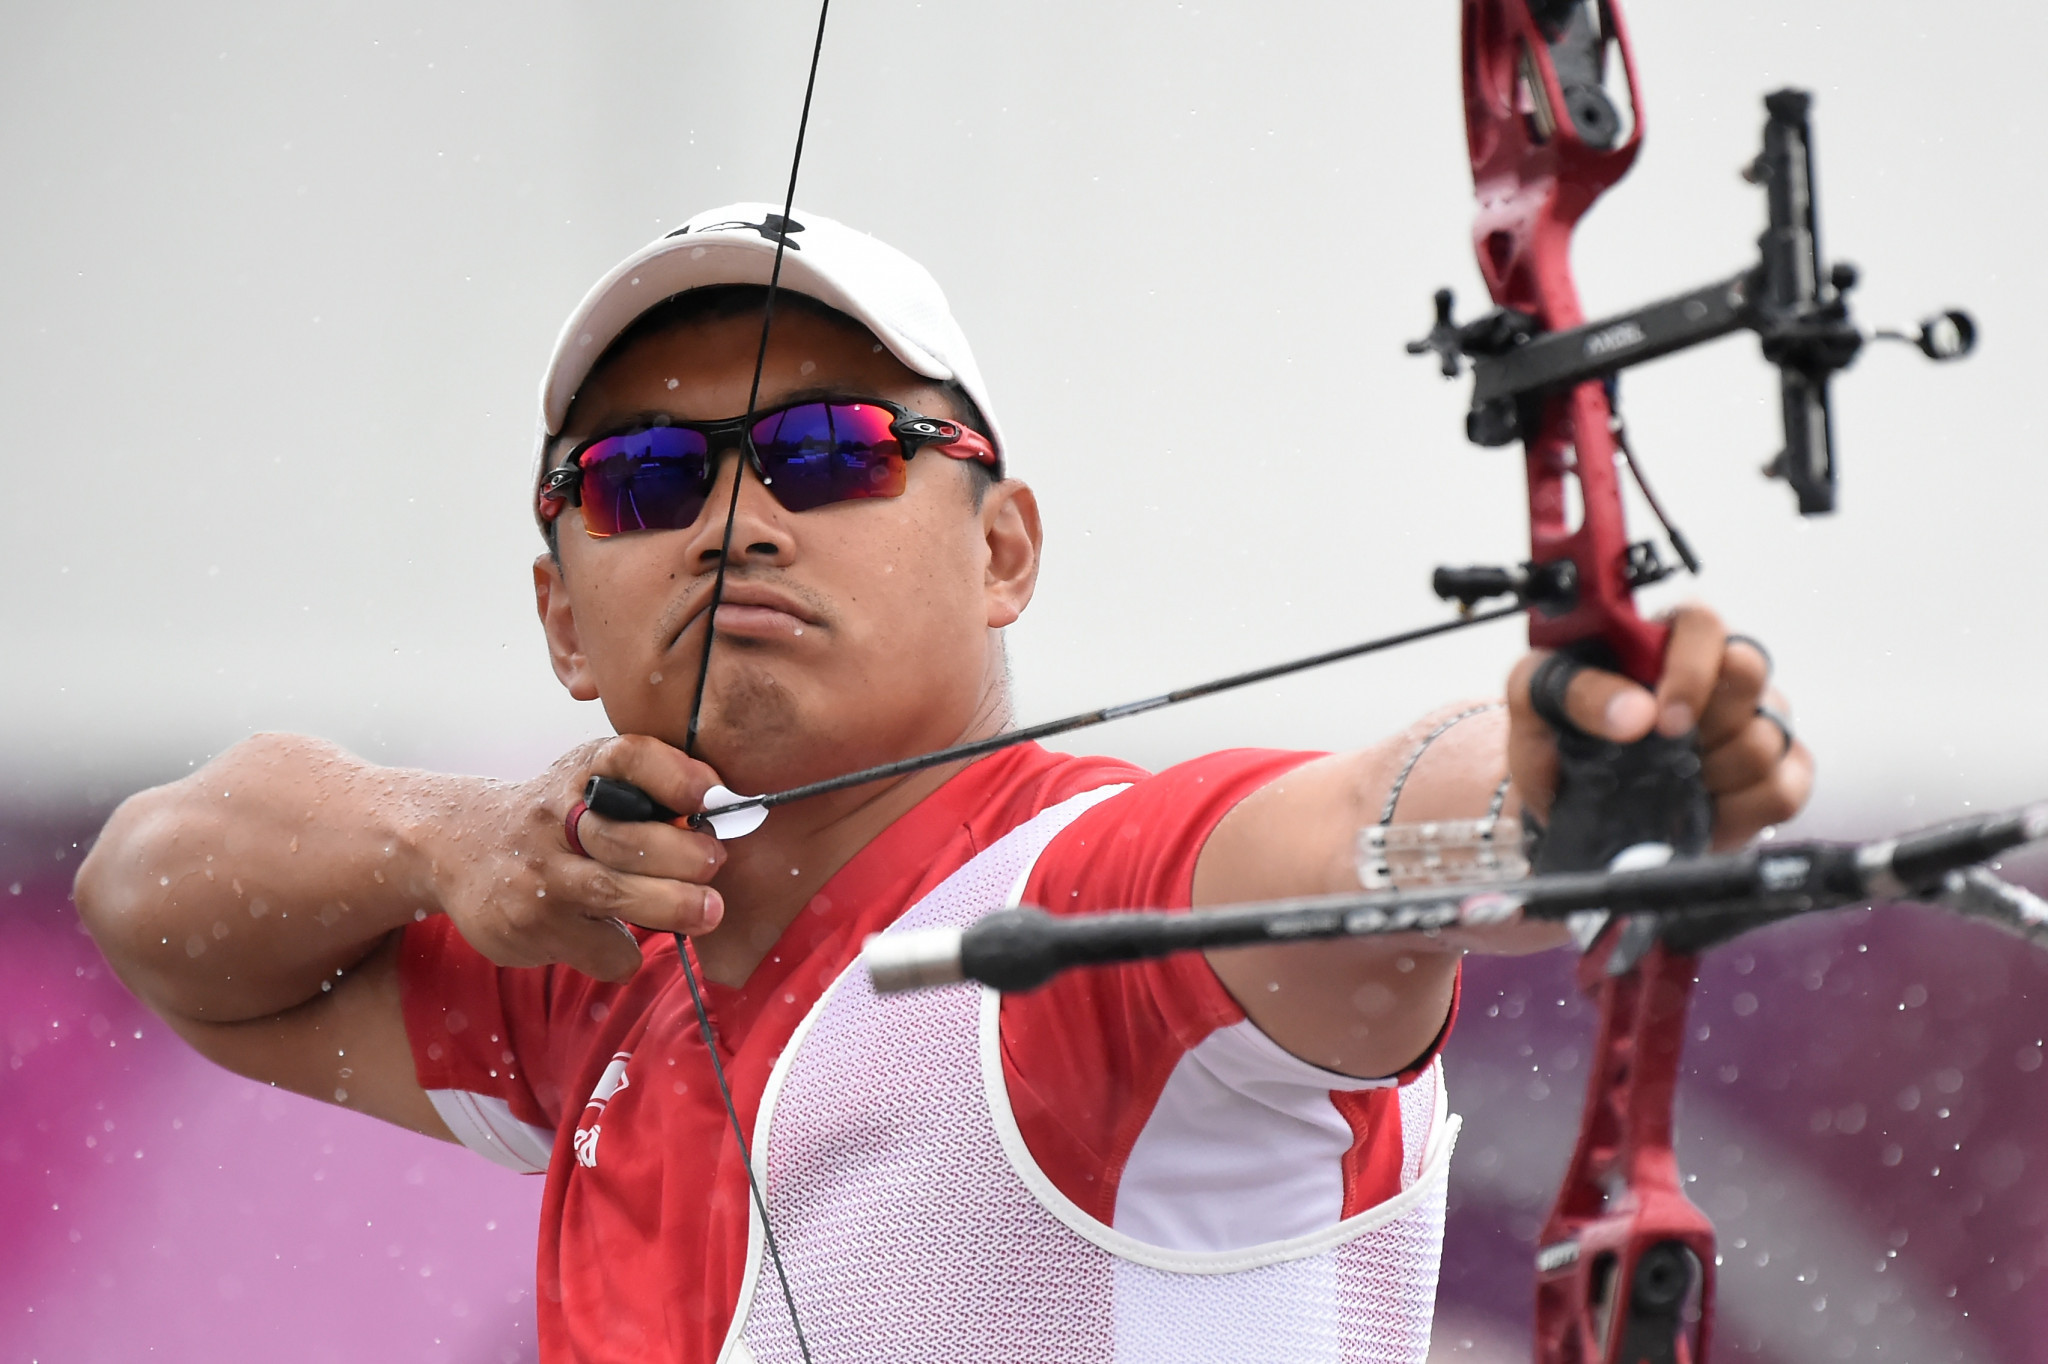 Canada's Duenas wins World Archery's recurve Lockdown Knockout